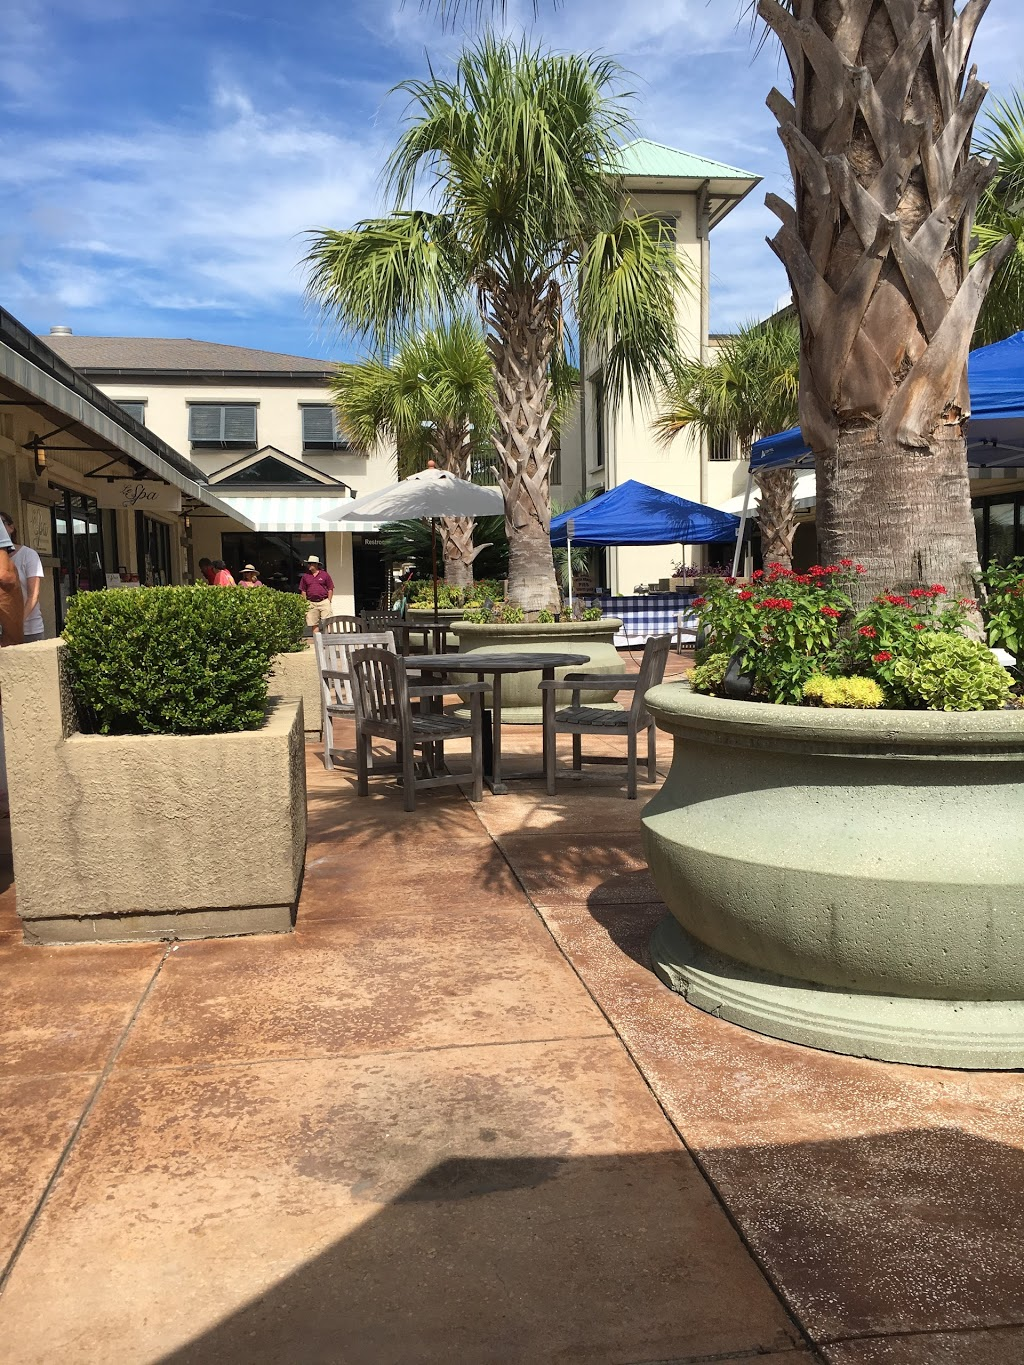 The Shops at Sea Pines Center | shopping mall | 71 Lighthouse Rd, Hilton Head Island, SC 29928, USA | 8433635699 OR +1 843-363-5699